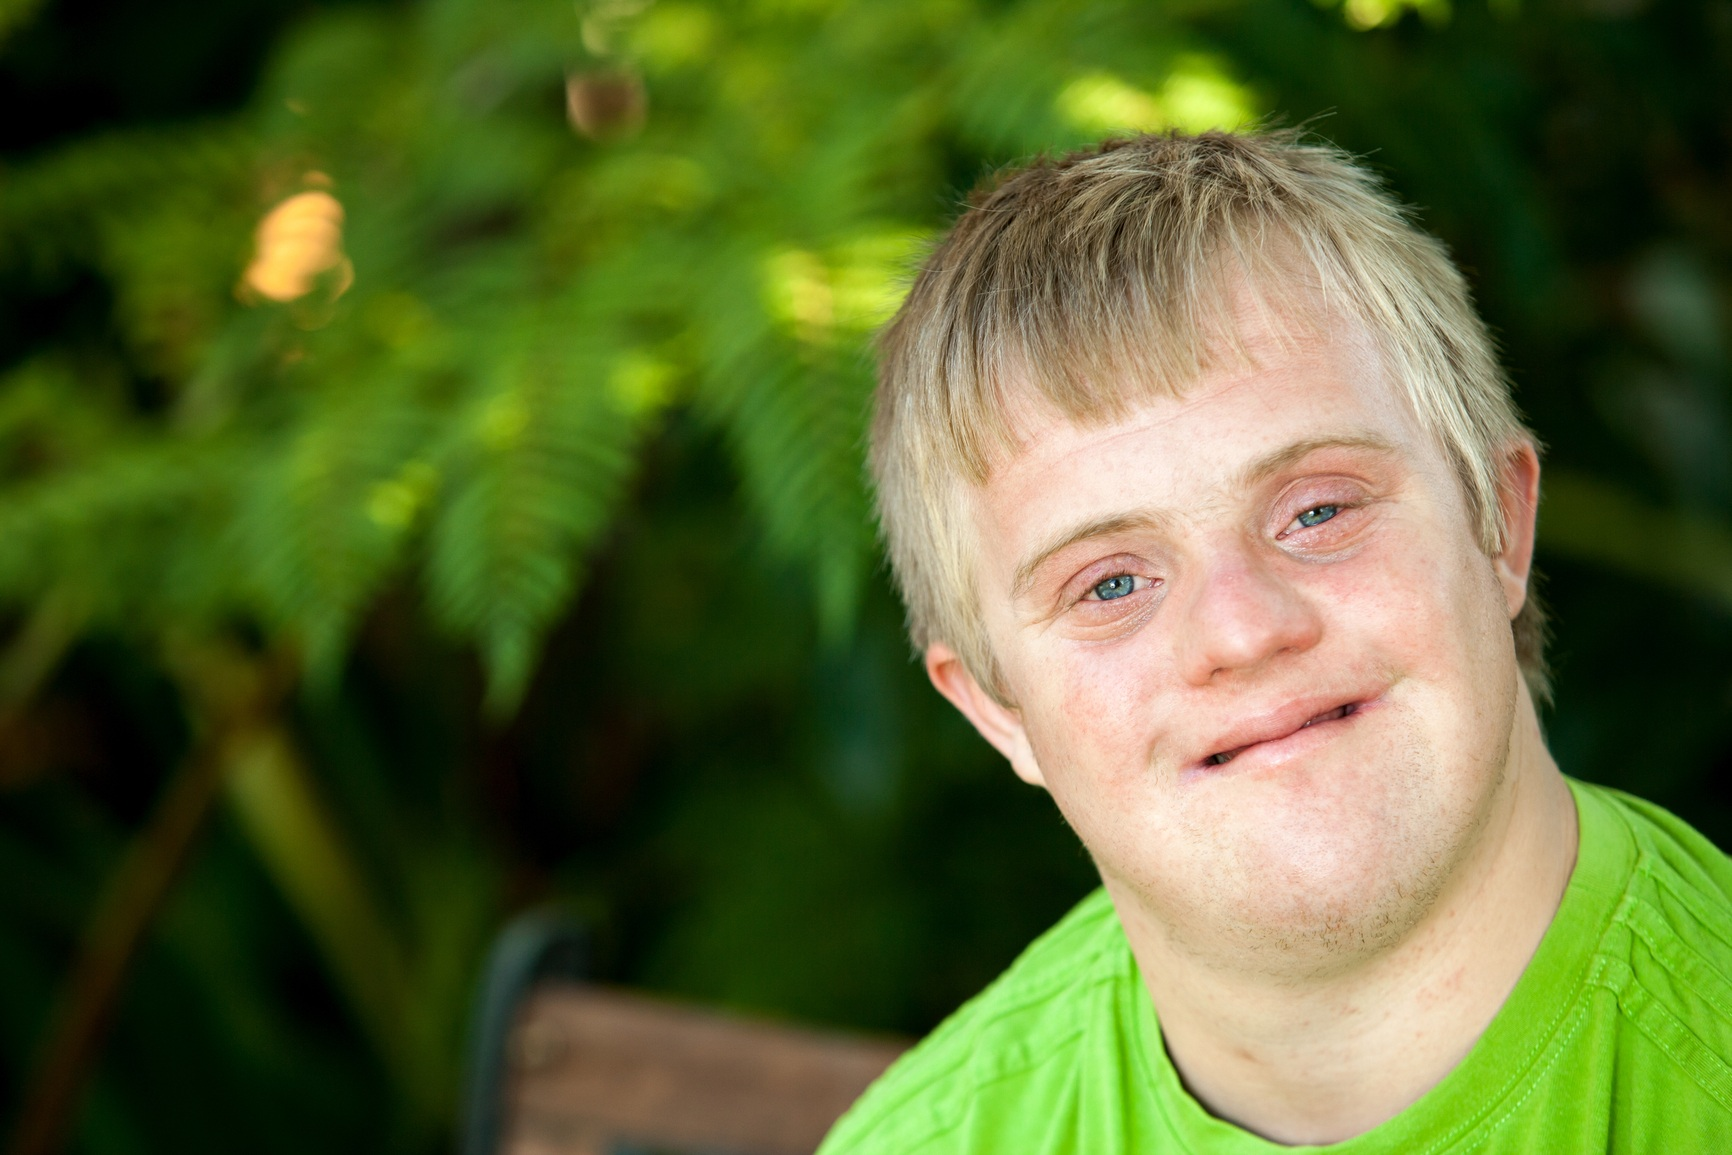 downs syndrome Shop for down syndrome on etsy, the place to express your creativity through the buying and selling of handmade and vintage goods.